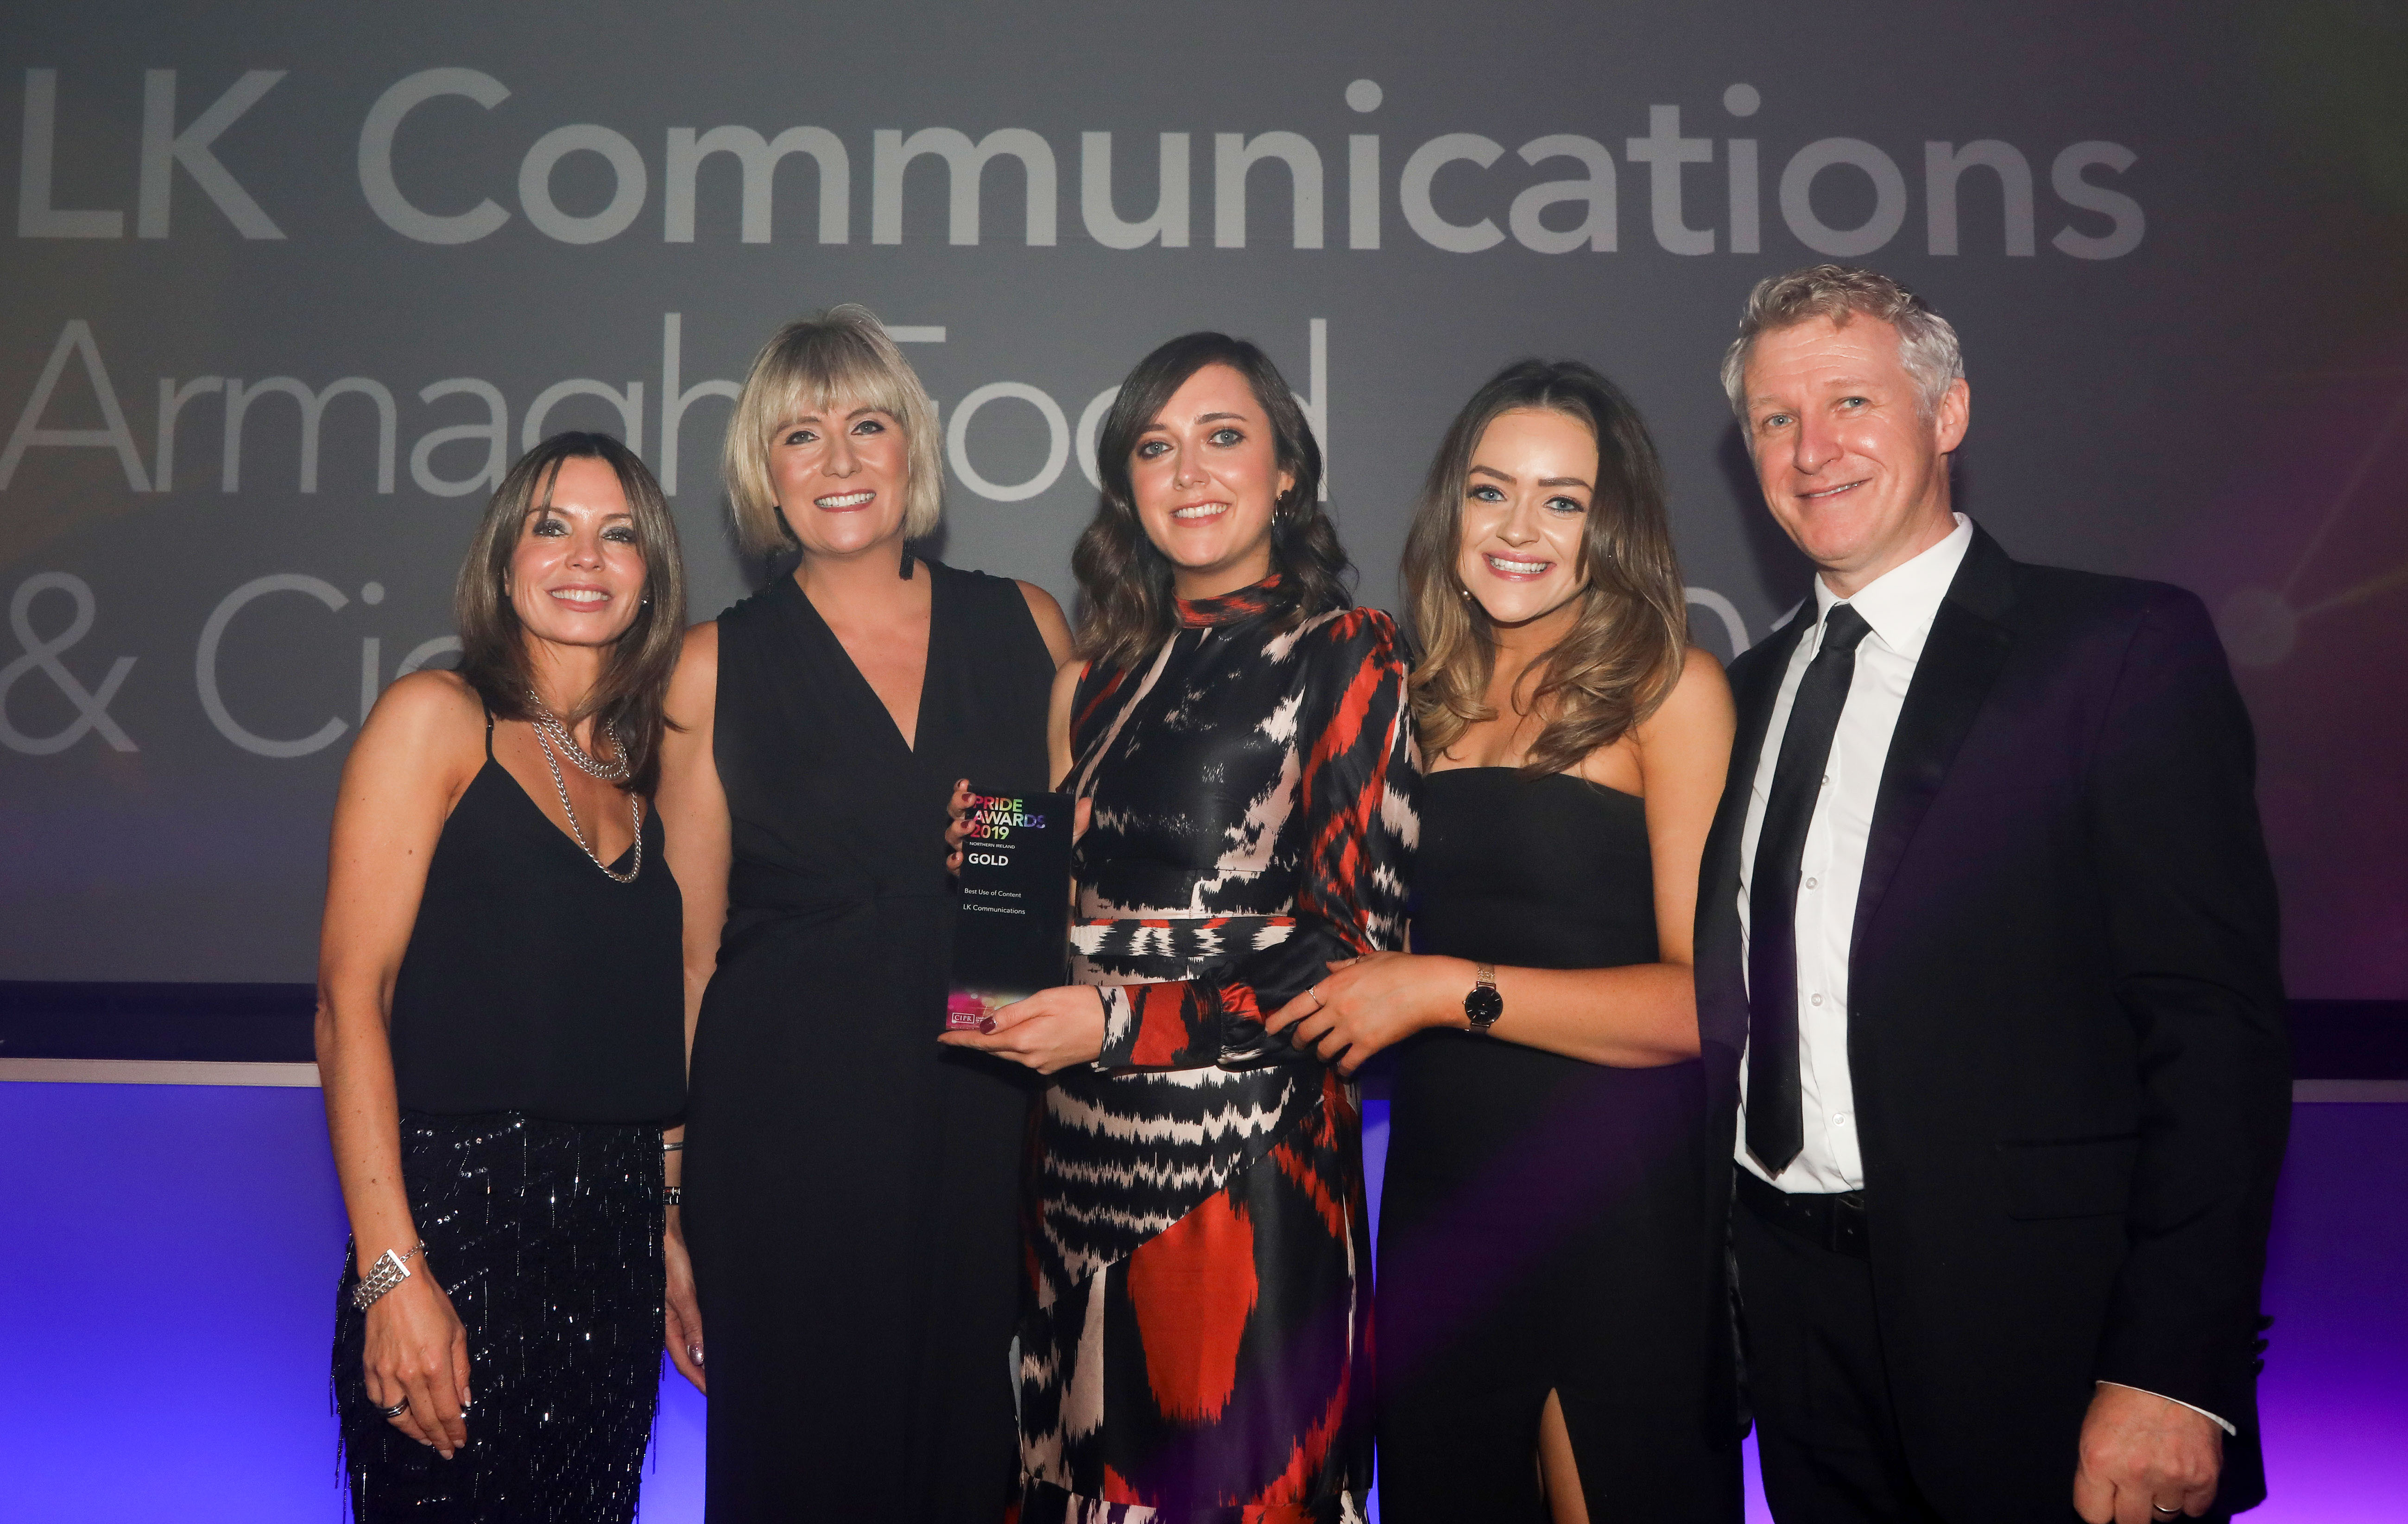 Triple Win for LK at CIPR Awards